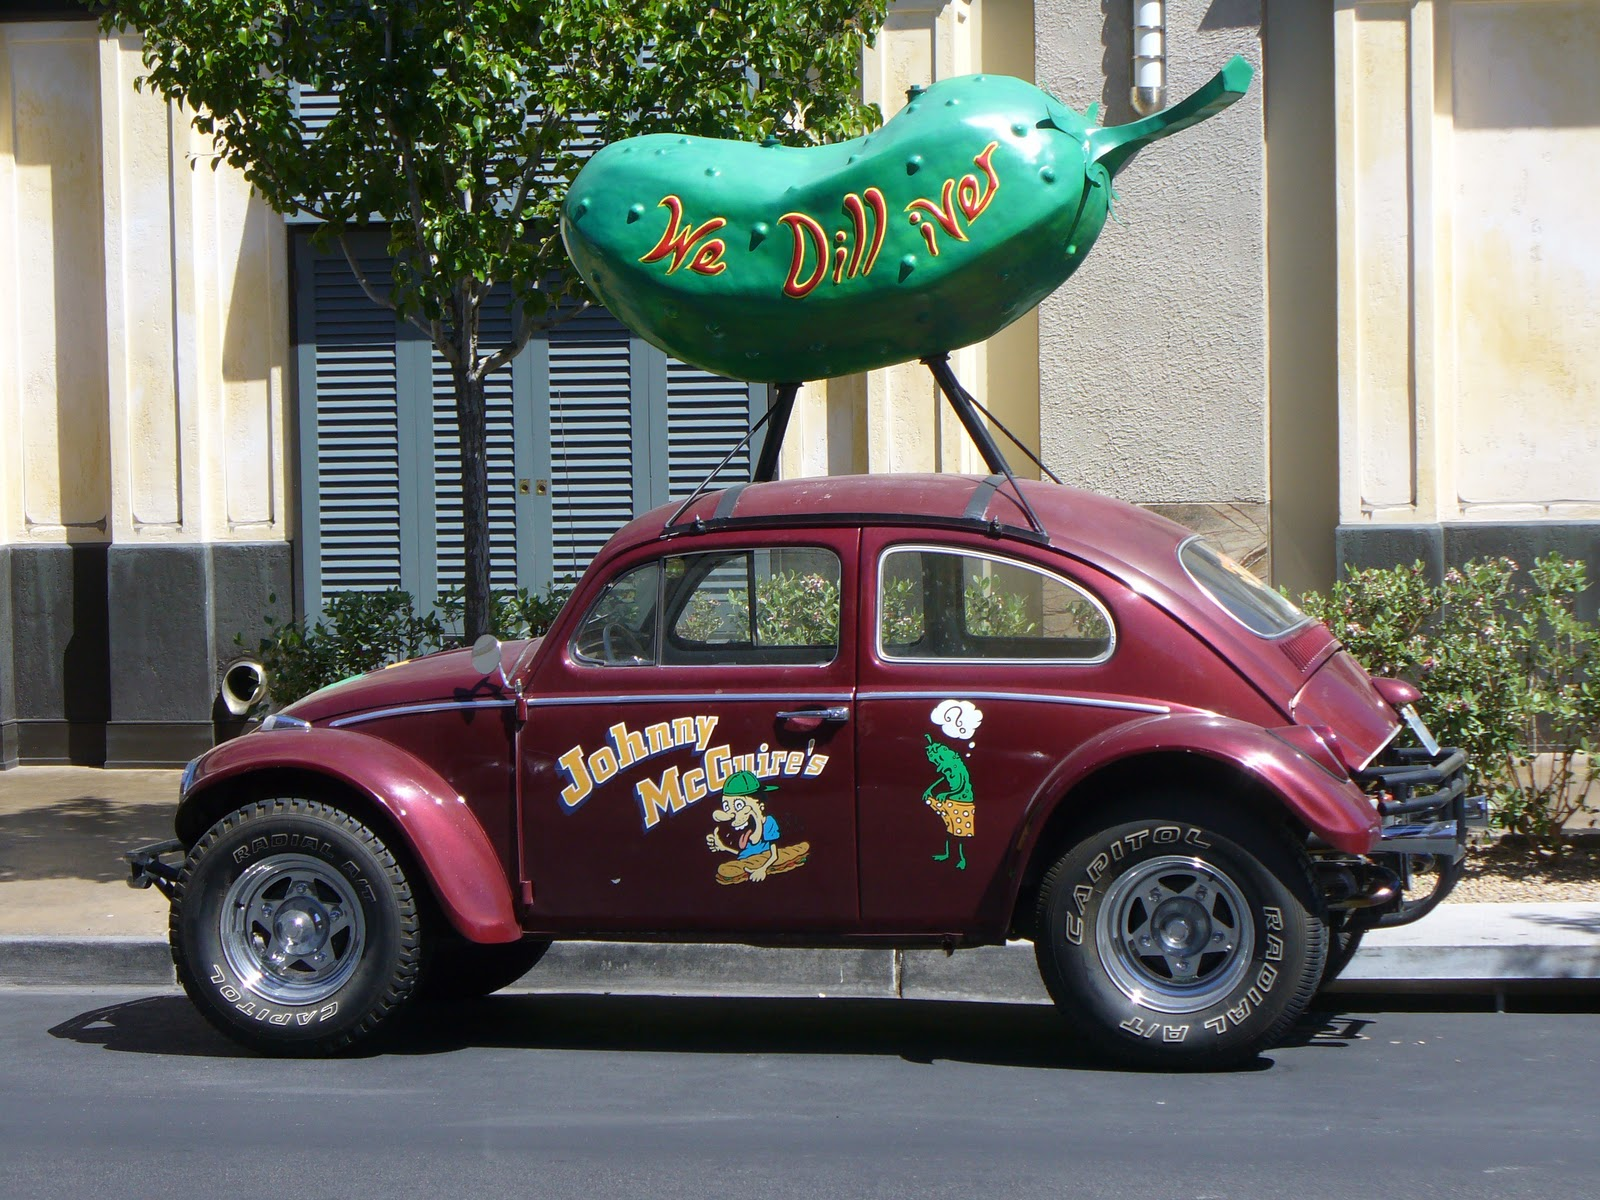 MORE KIDS THAN SUITCASES Our Punch Buggy Travel Game